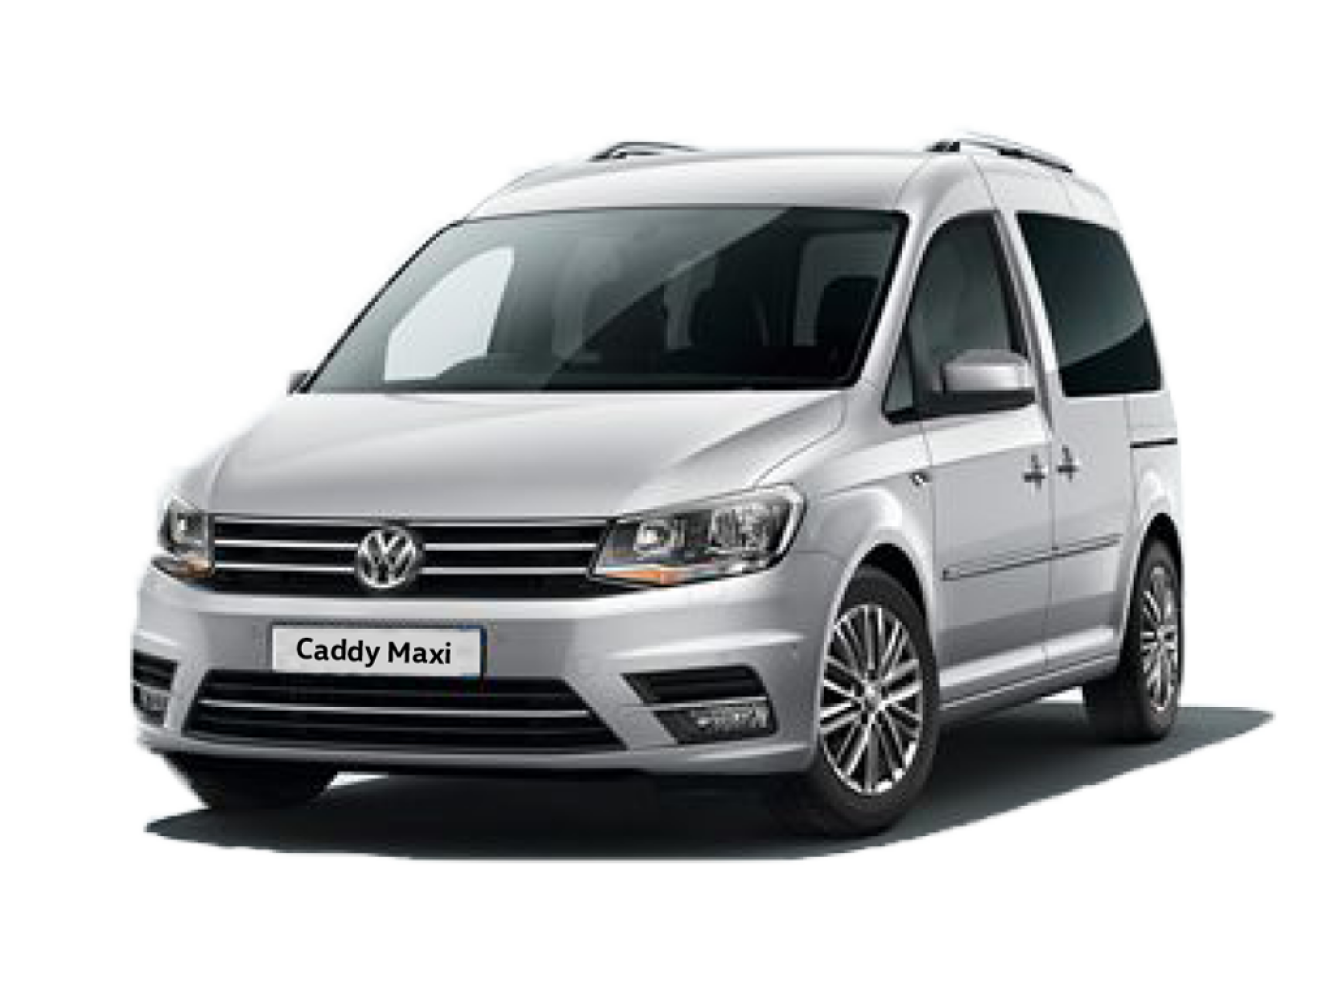 new volkswagen caddy maxi life 2 0 tdi 150 5dr dsg diesel. Black Bedroom Furniture Sets. Home Design Ideas